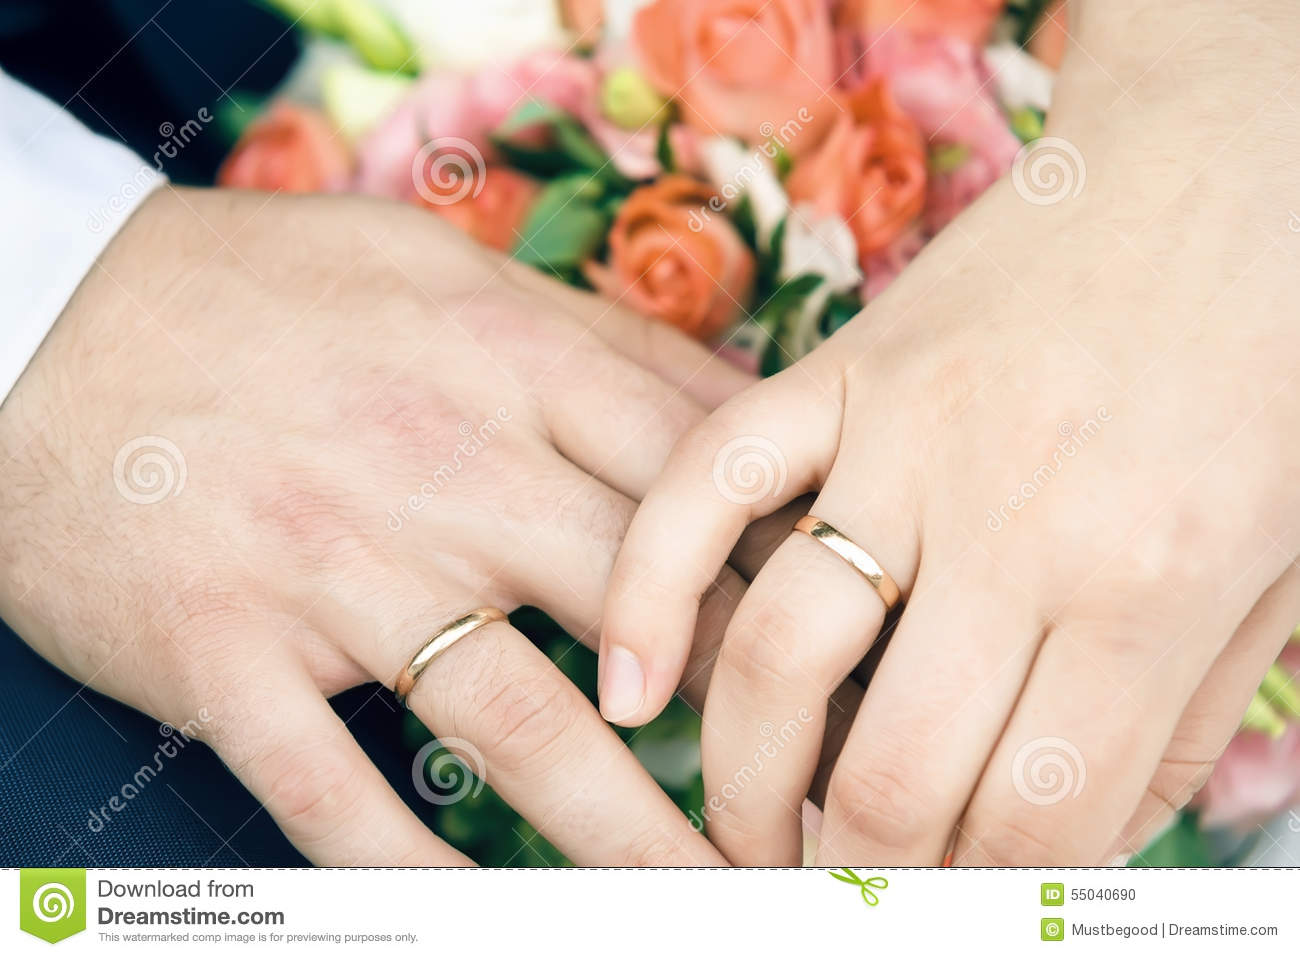 Hands Of Happy Newly Married Couple With Gold Wedding Rings And